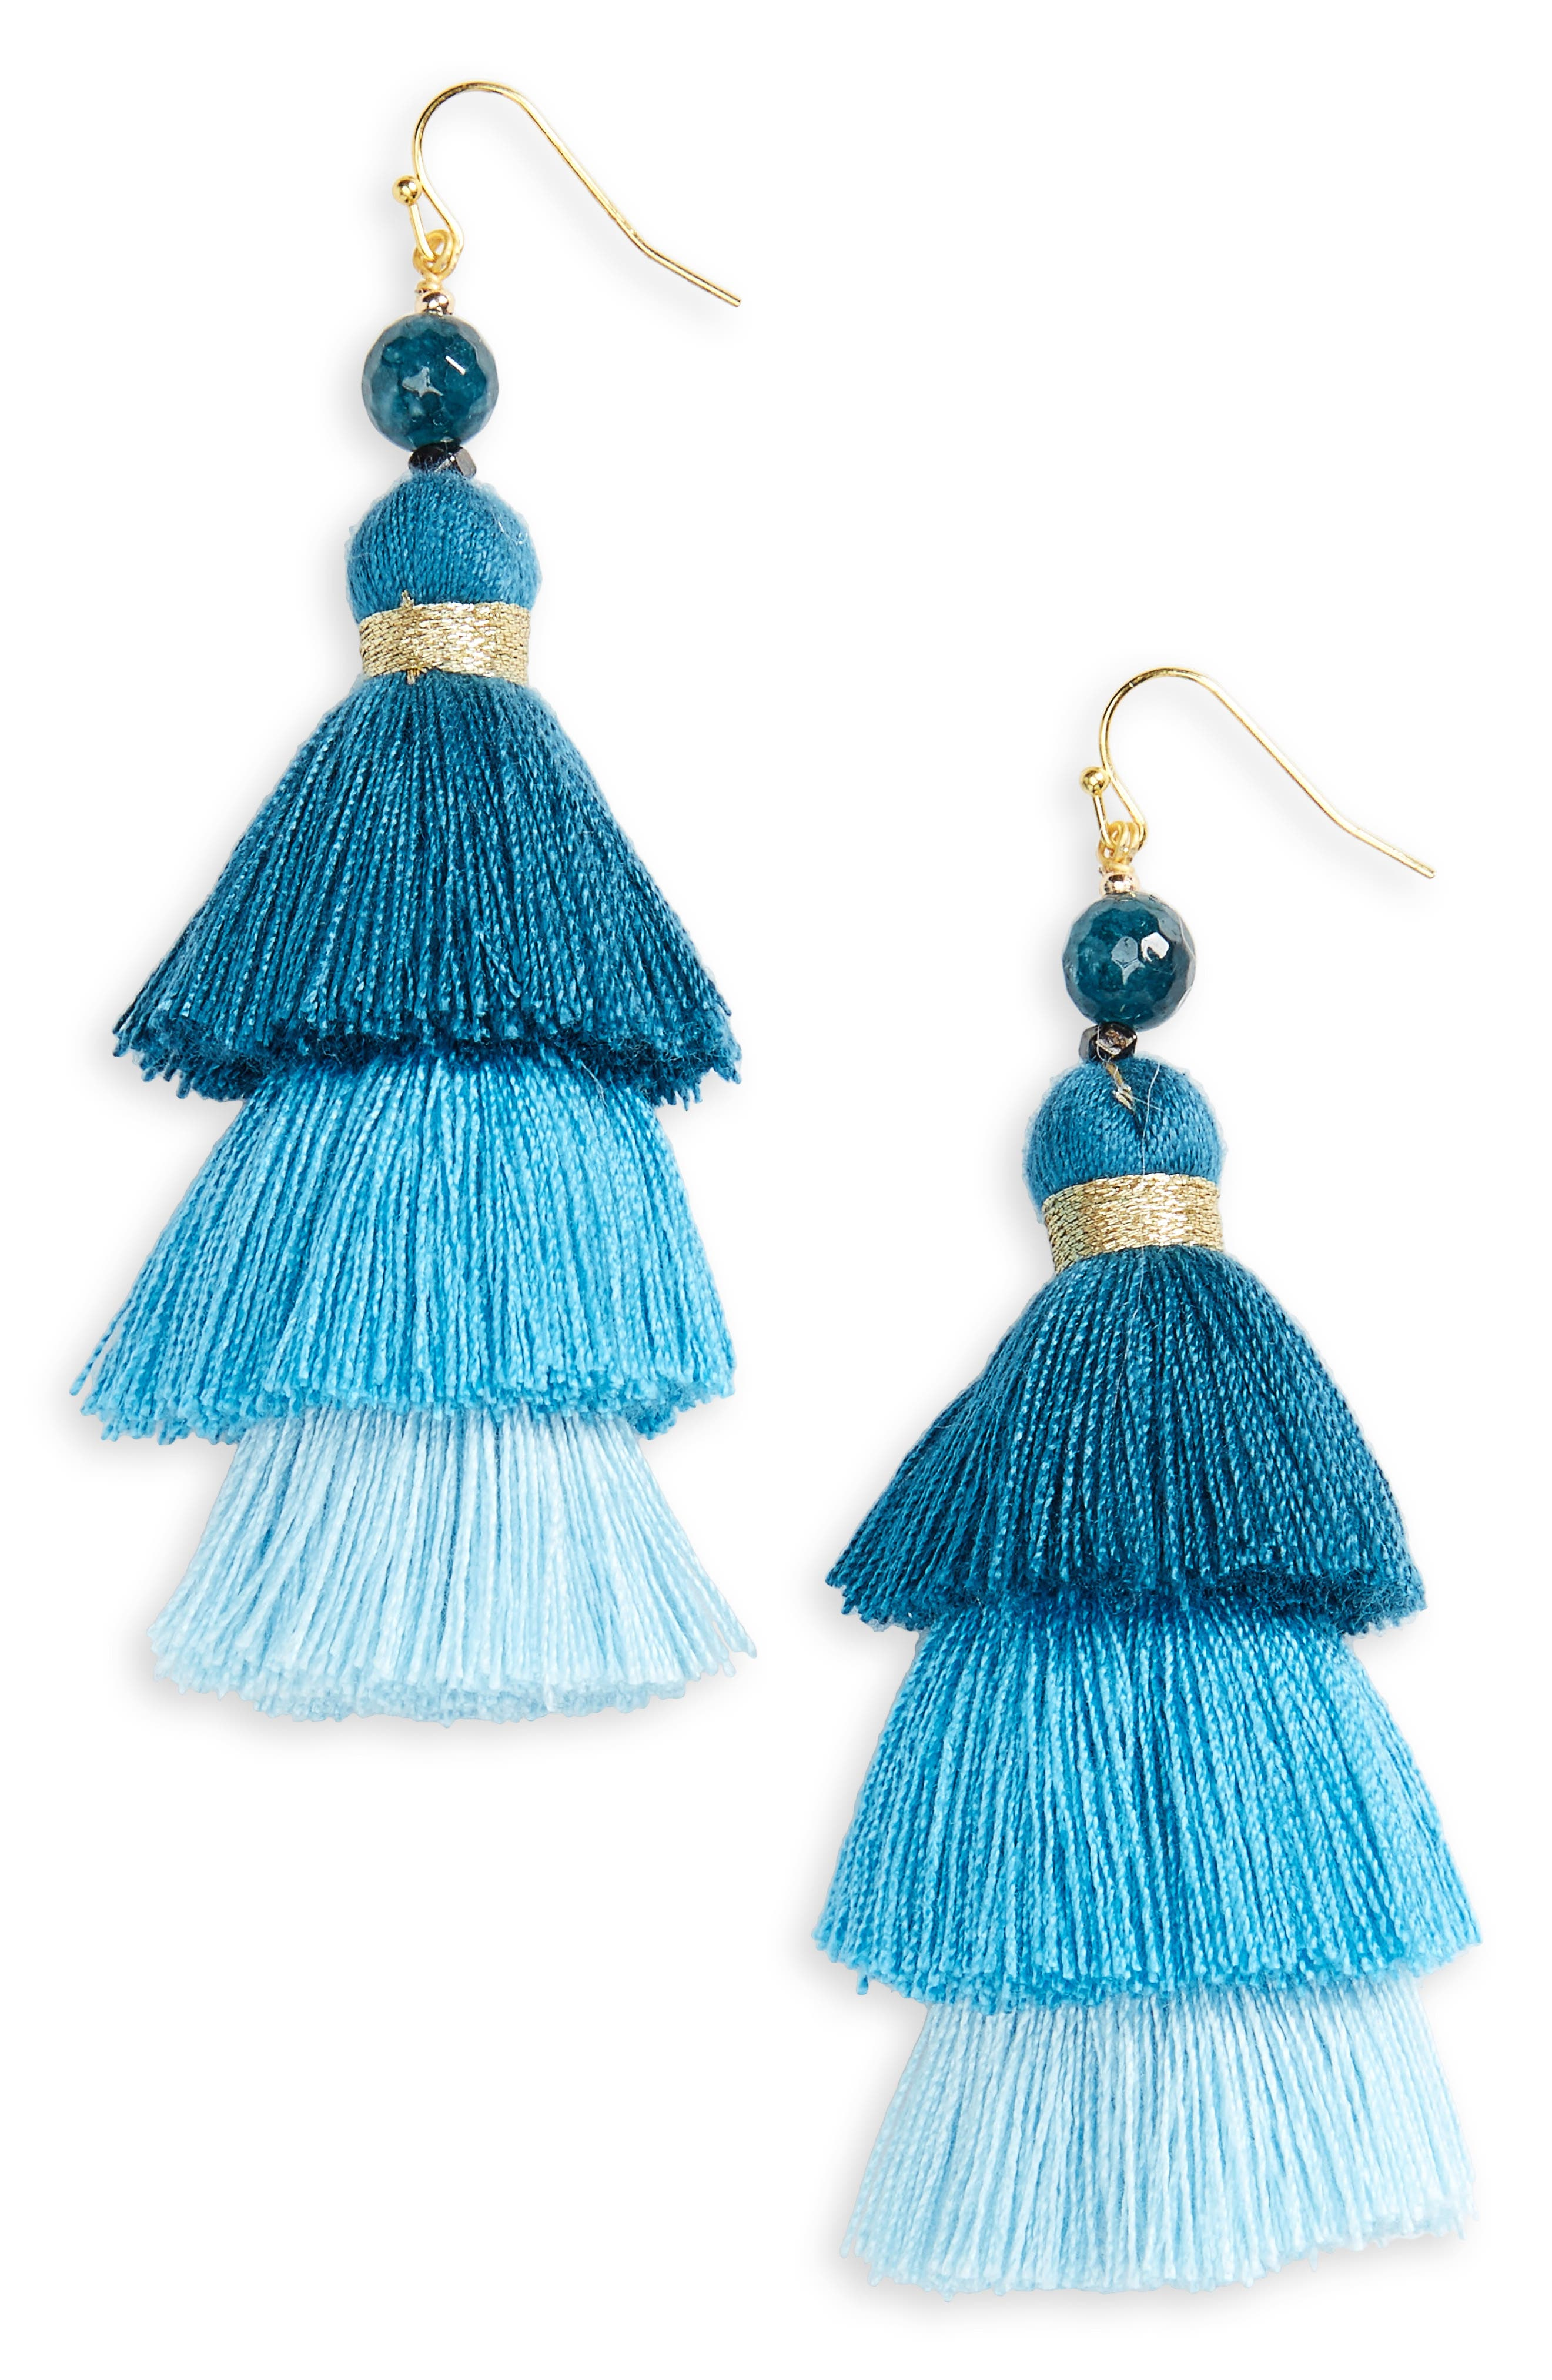 Nakamol Design Layered Tassel Statement Earrings